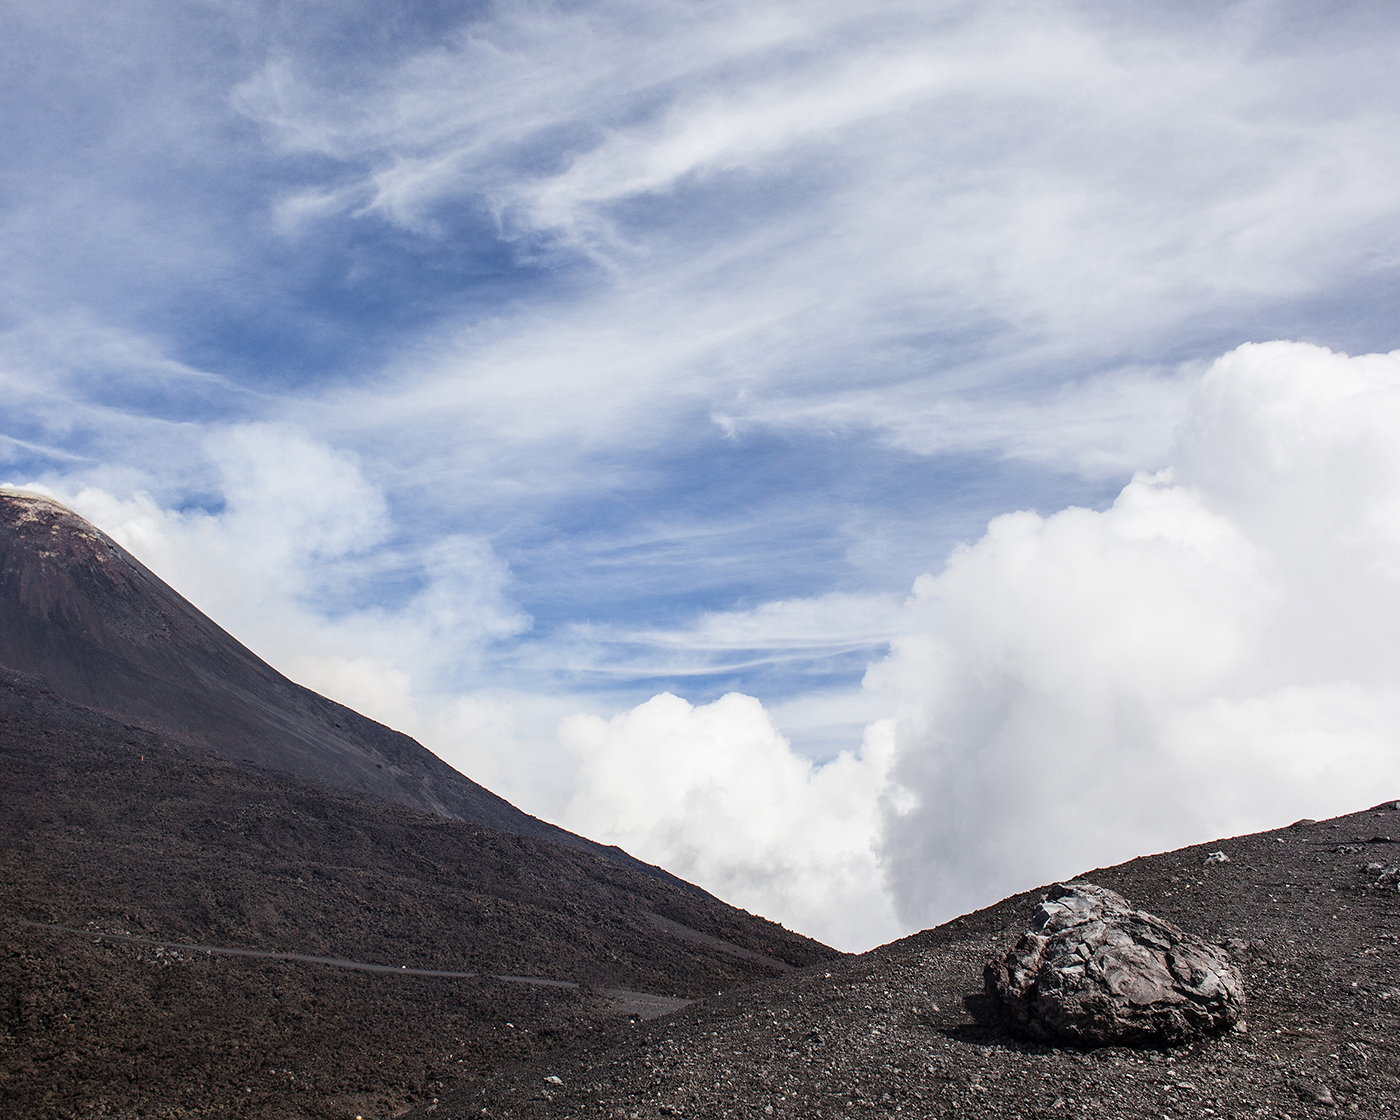 Volcano after the Storm